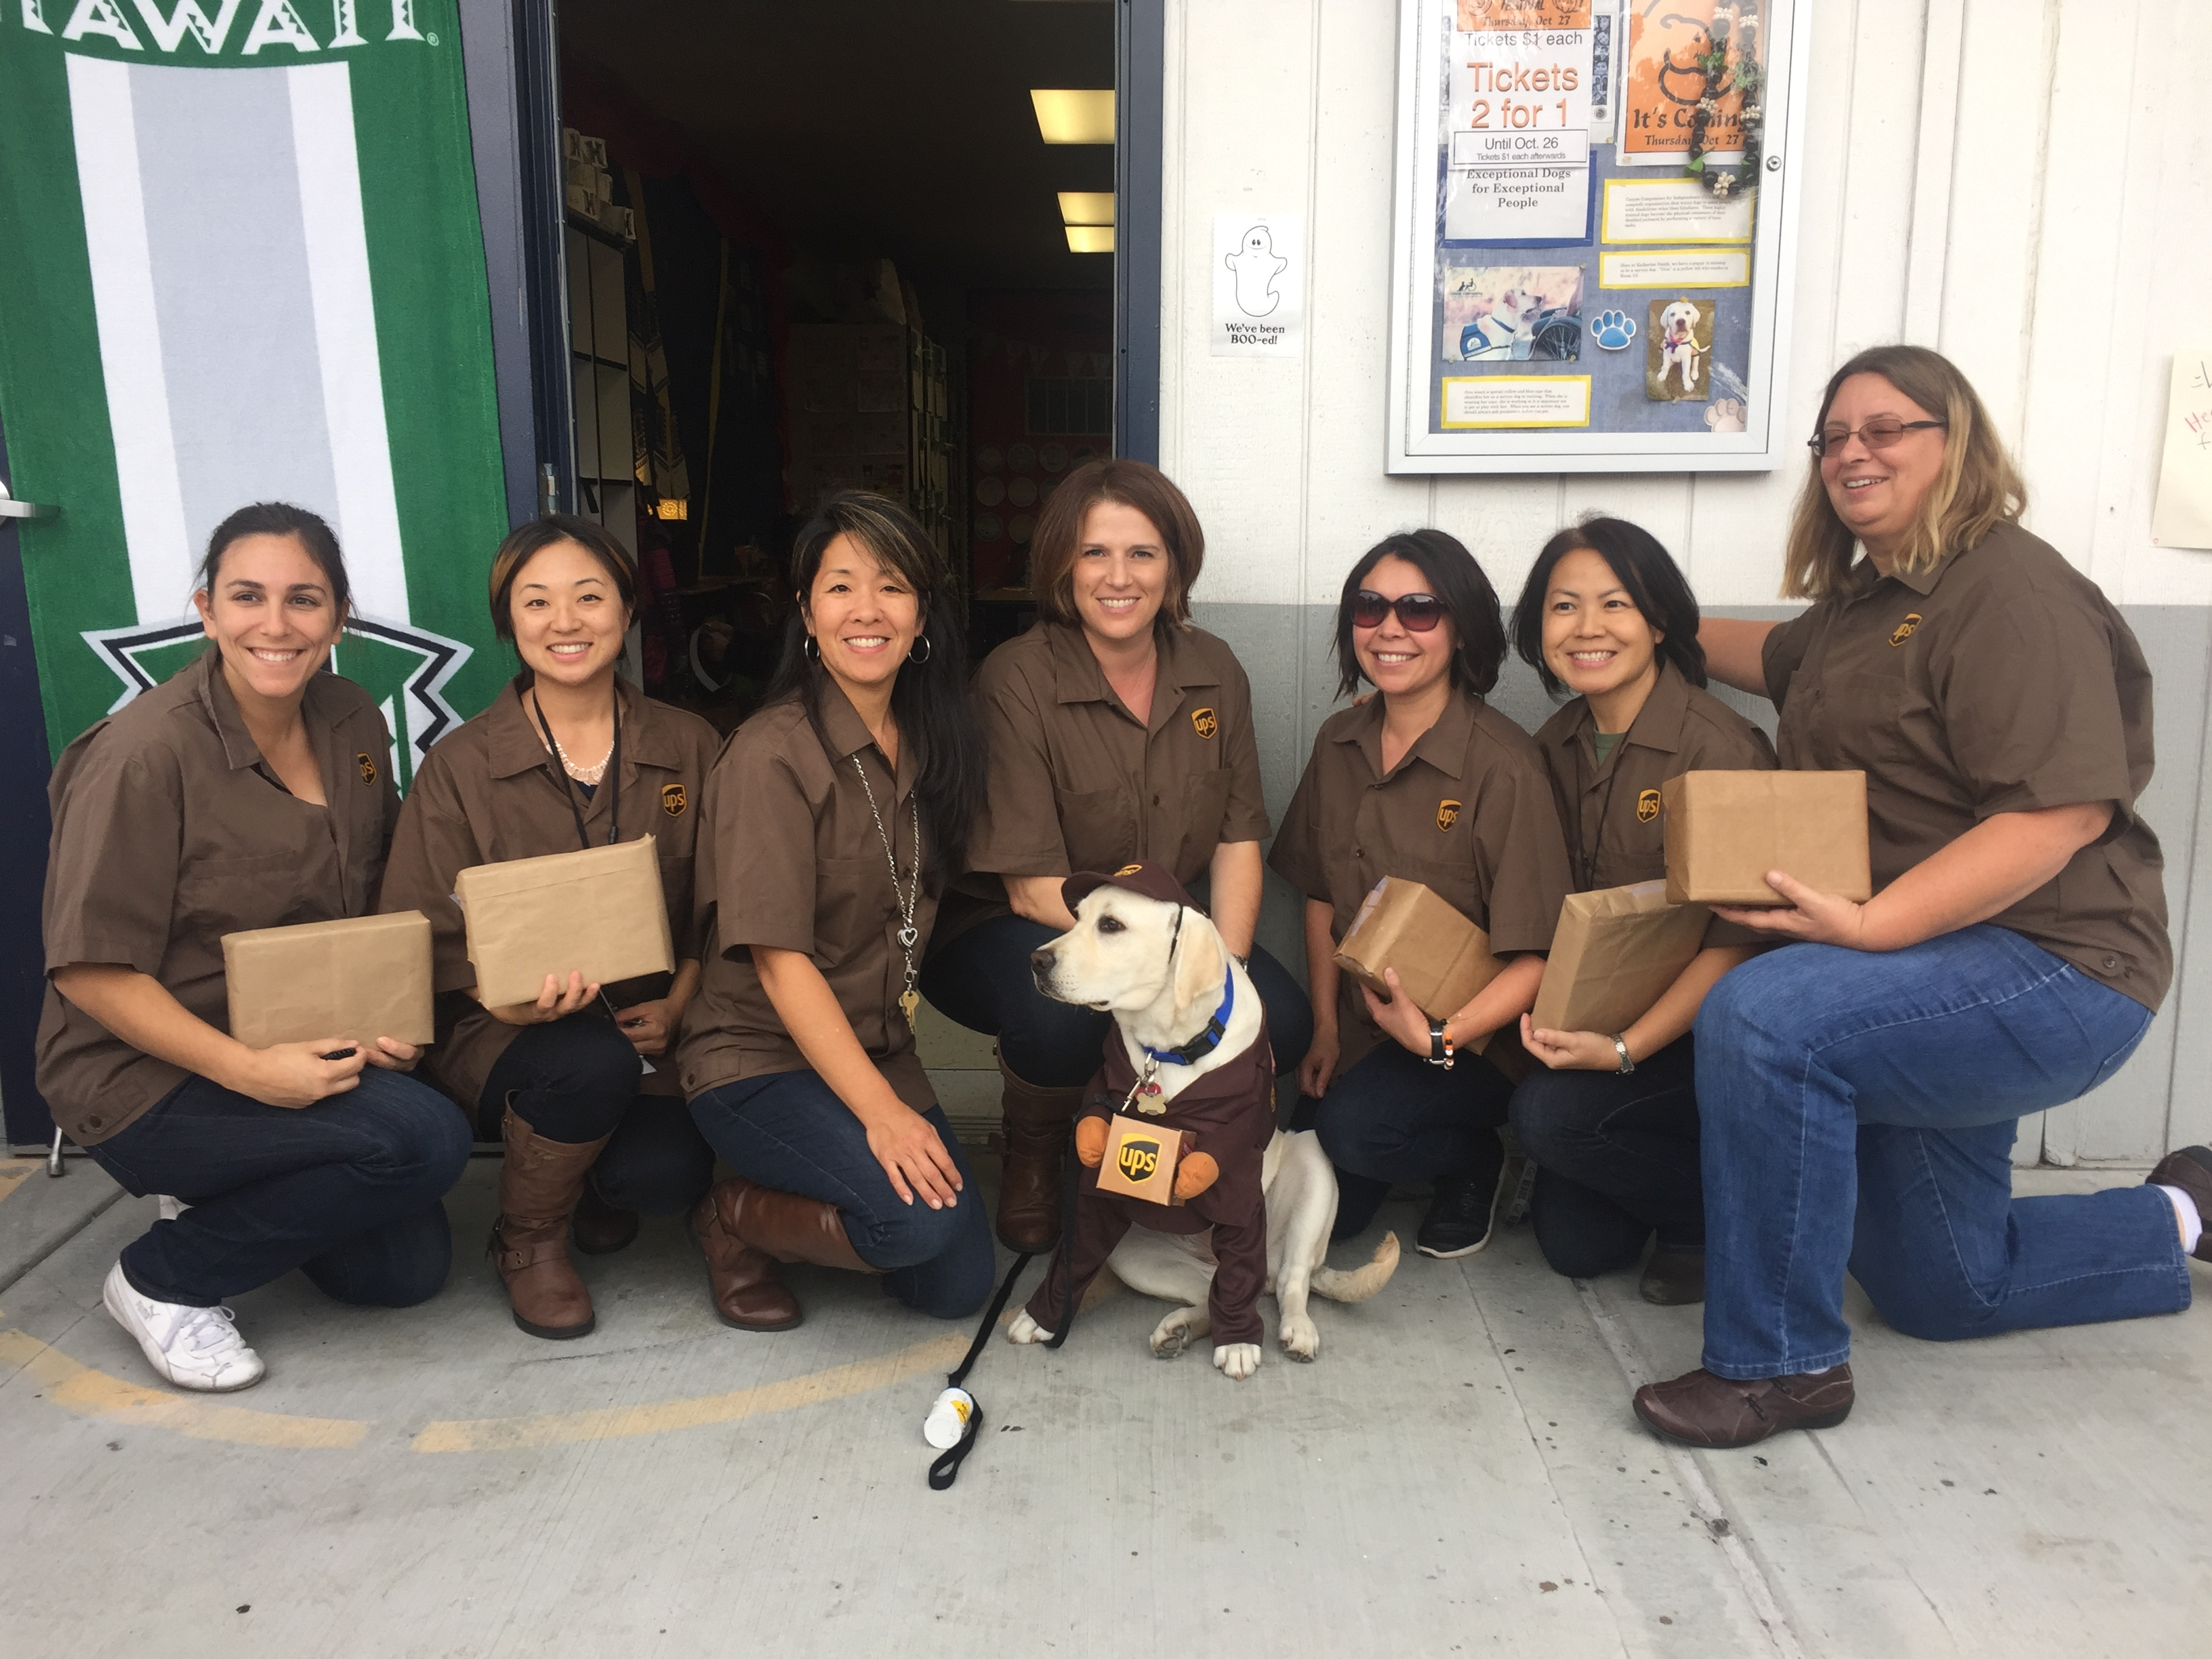 Oria and friends dressed as UPS Carriers on Halloween 2016